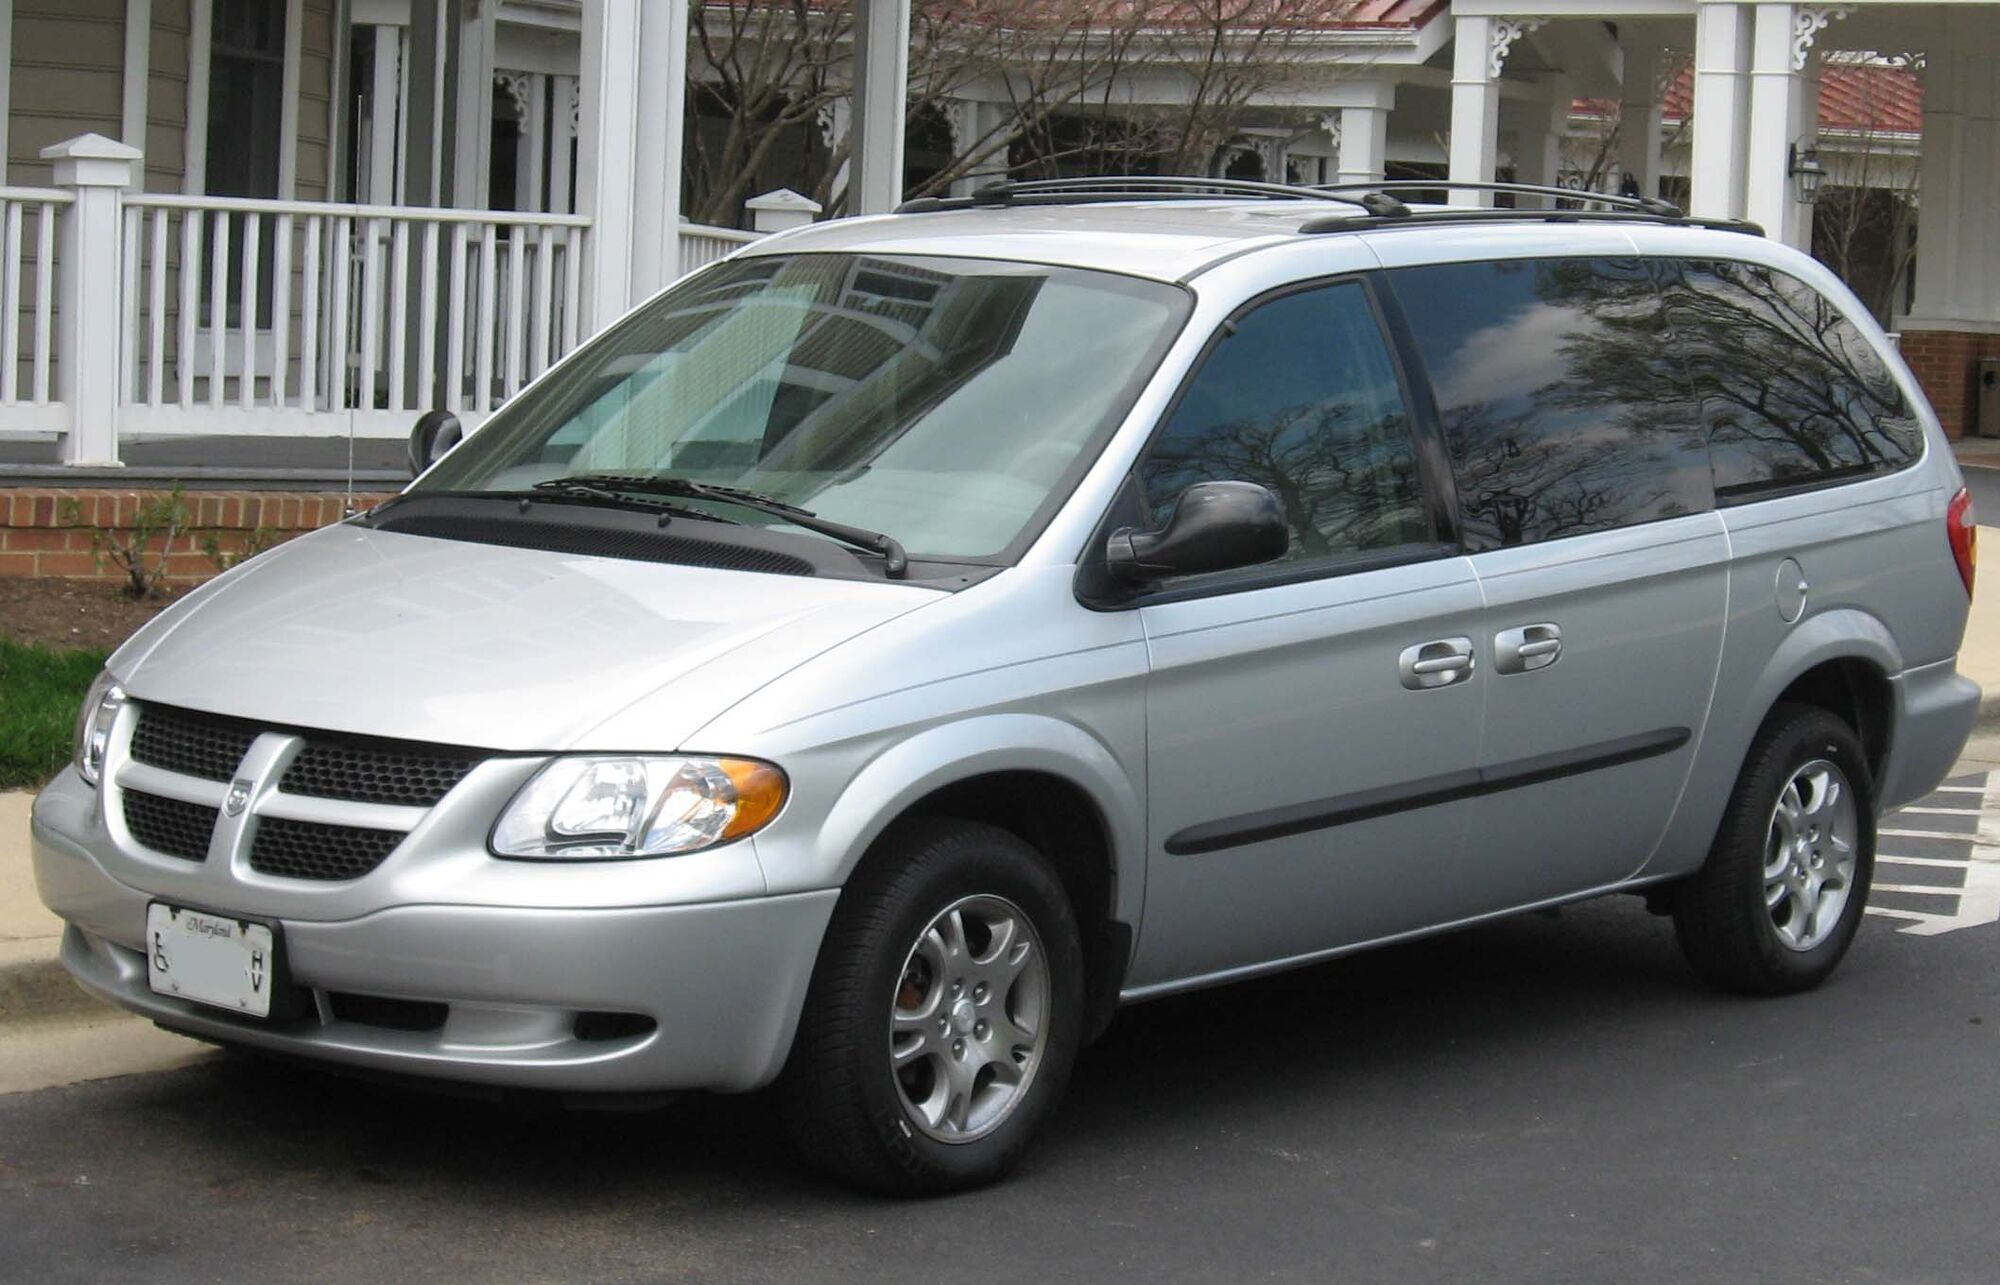 Dodge Caravan | Tractor & Construction Plant Wiki | FANDOM powered by Wikia